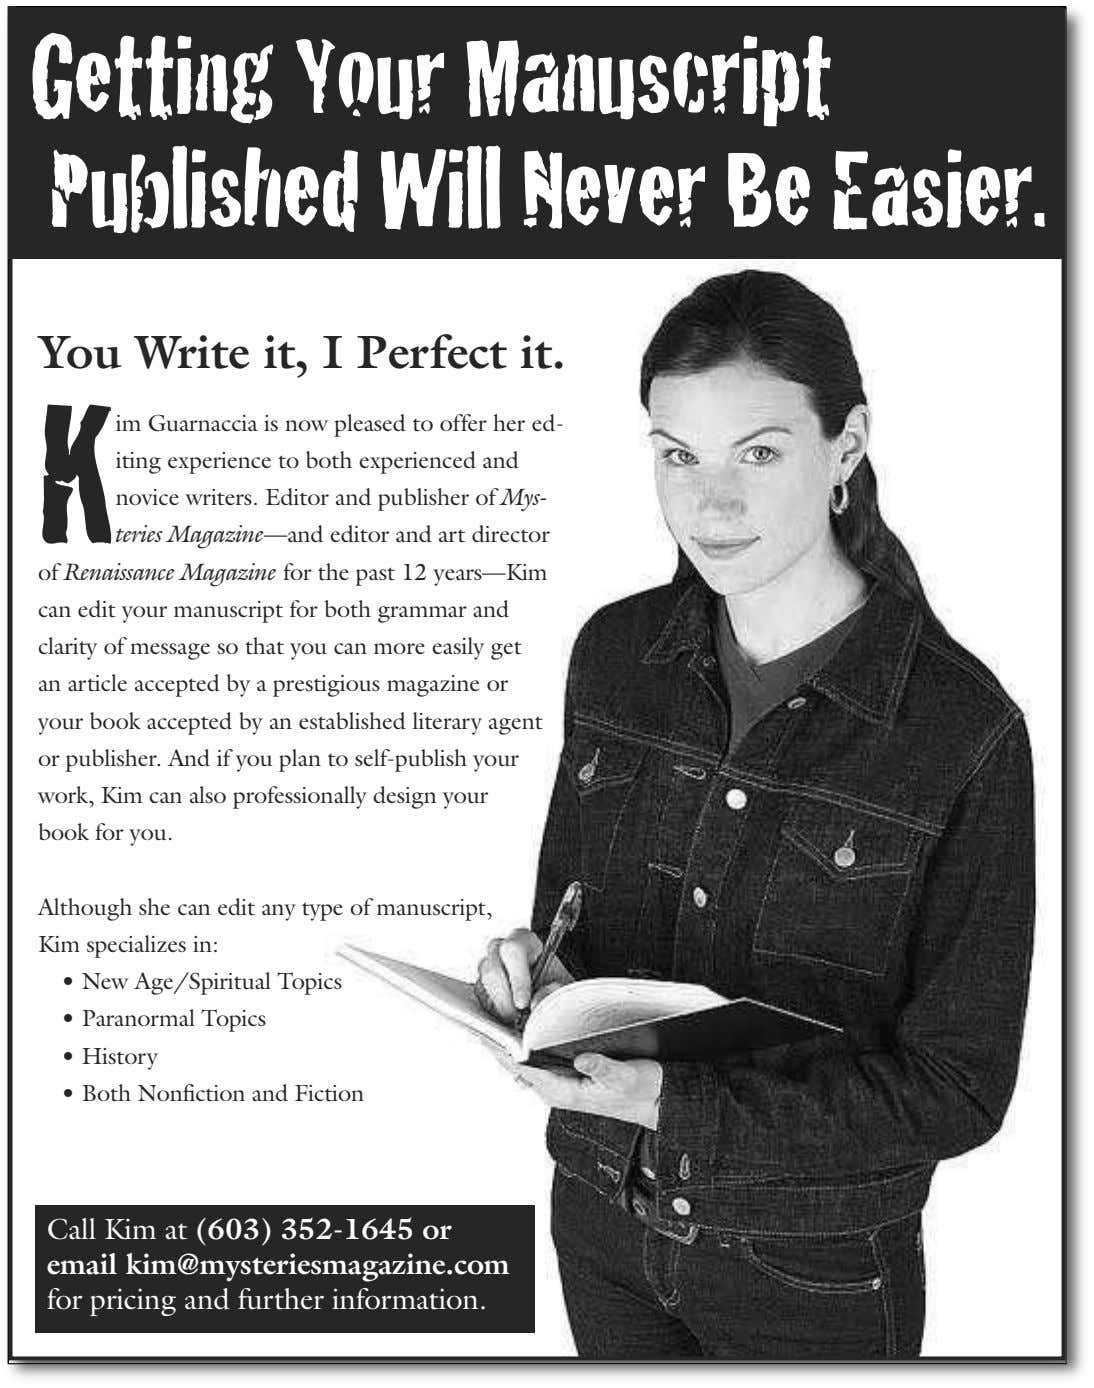 Getting Your Manuscript Published Will Never Be Easier. You Write it, I Perfect it. K